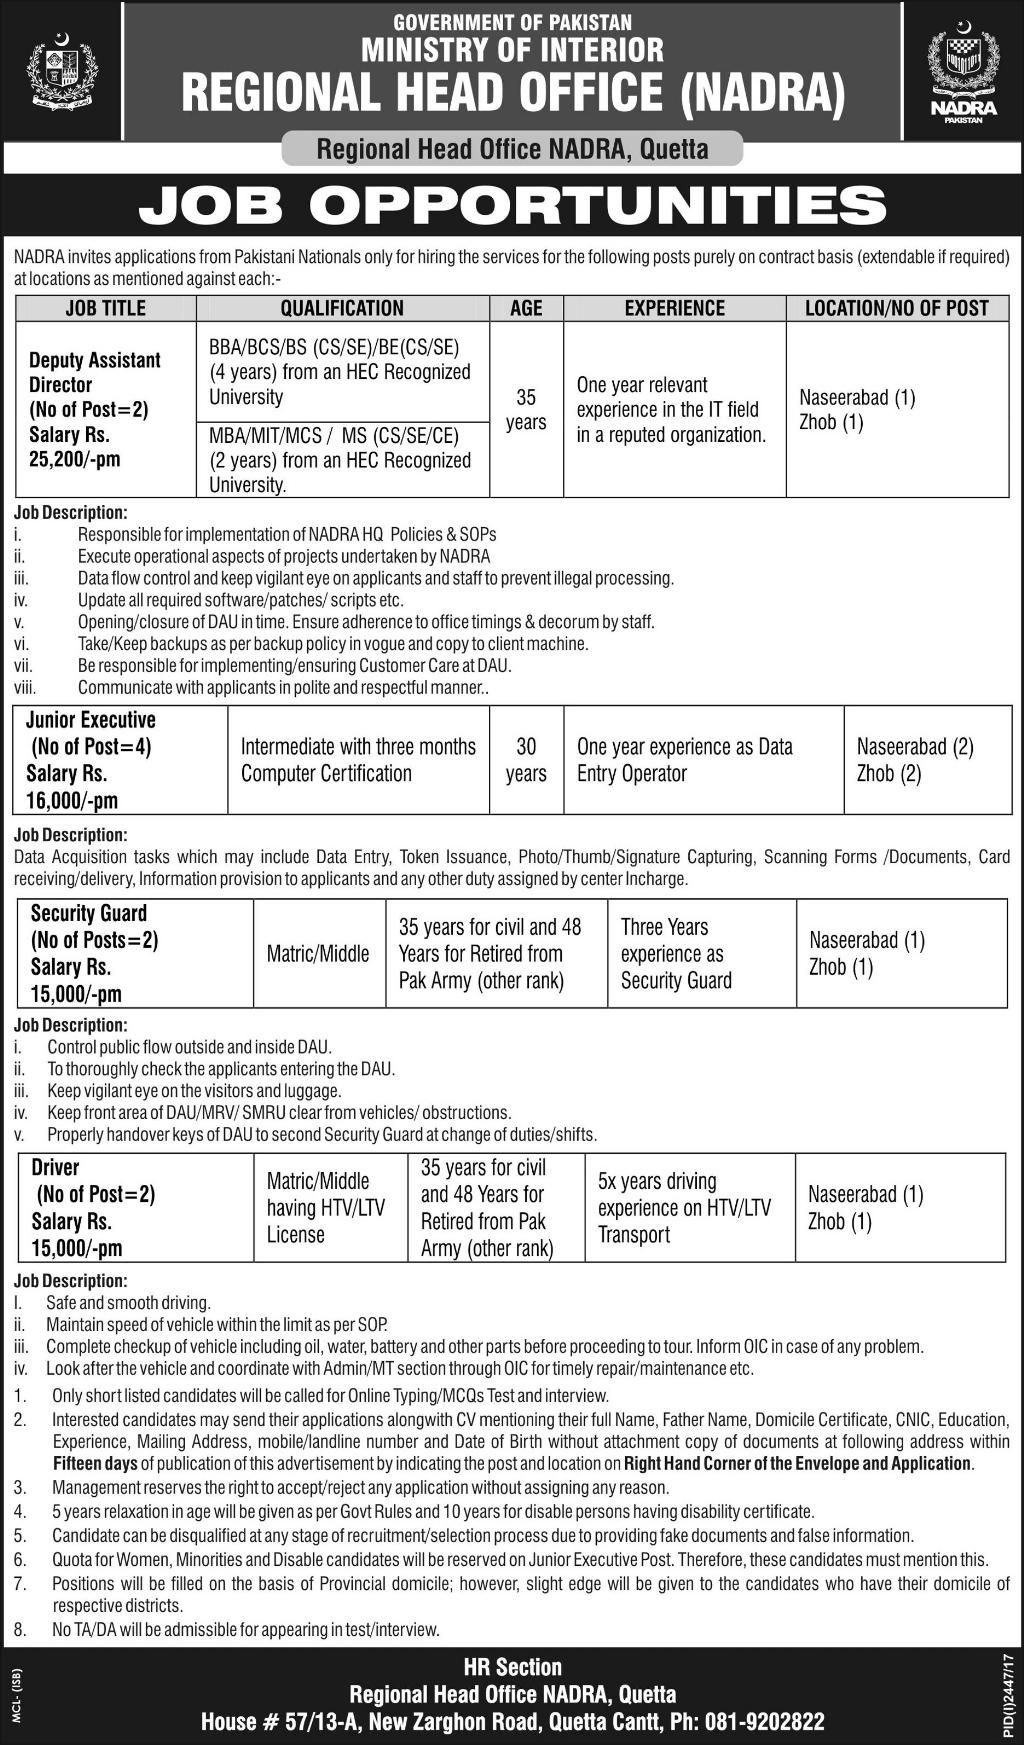 Regional Head Office Nadra Jobs  In Quetta For Directors And